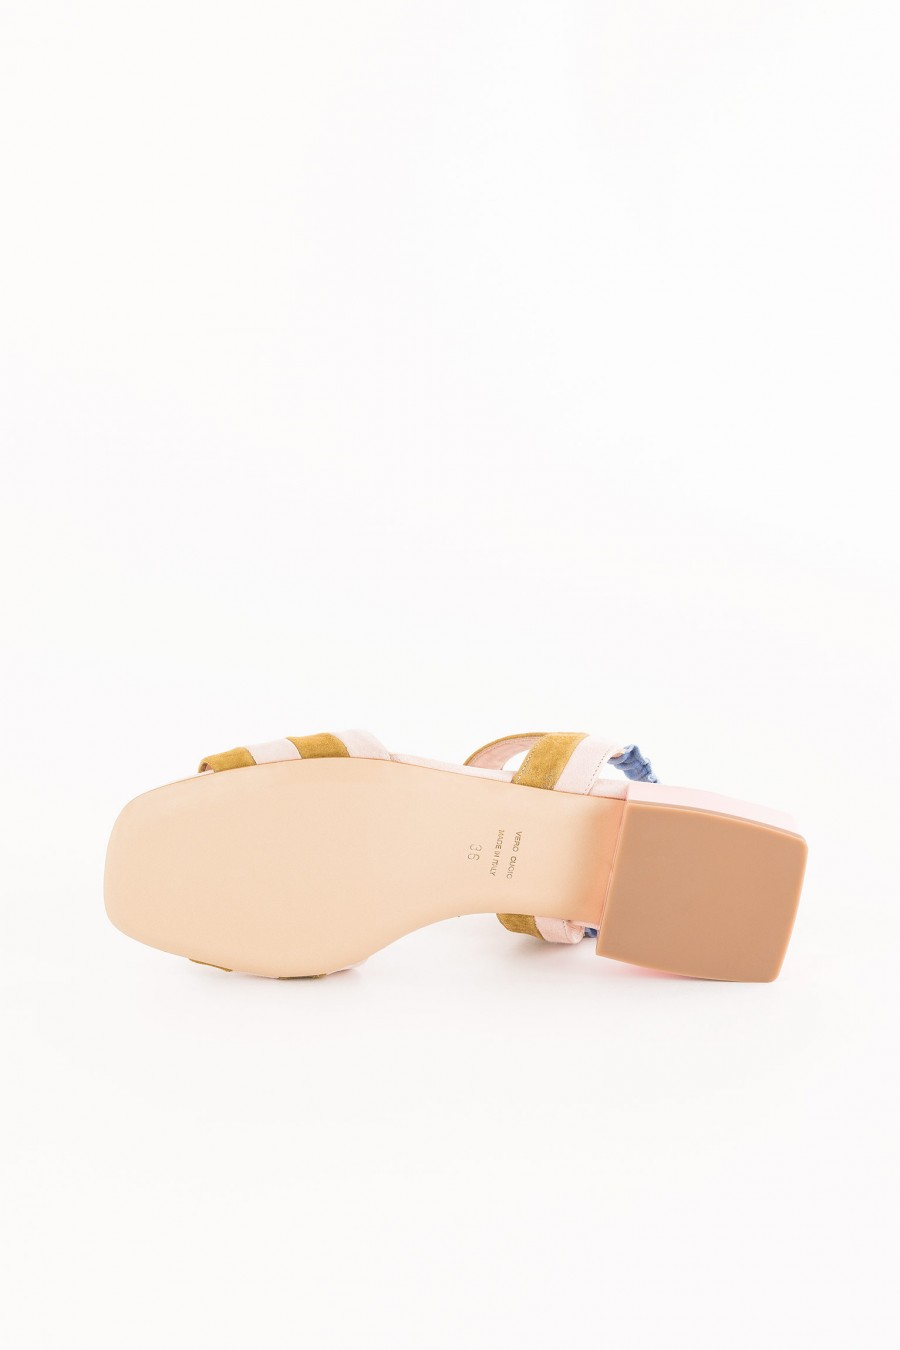 pink sandal with light blue band